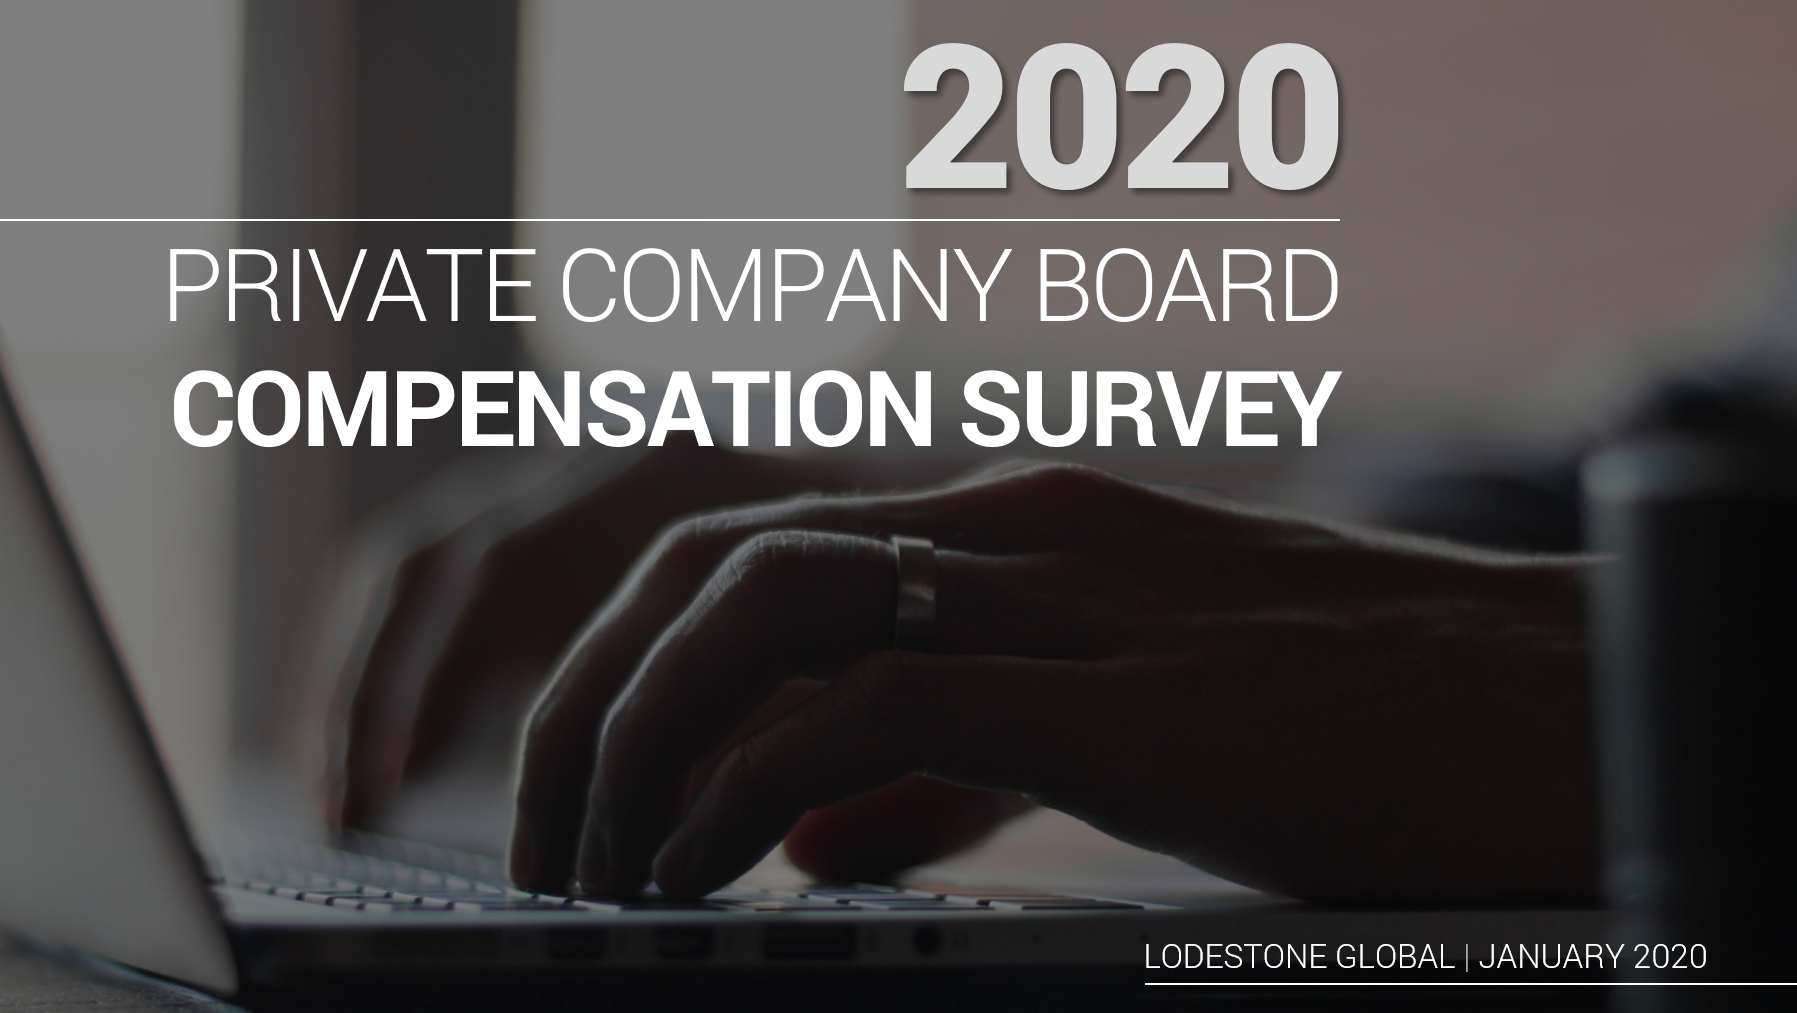 2020 Board Compensation Survey